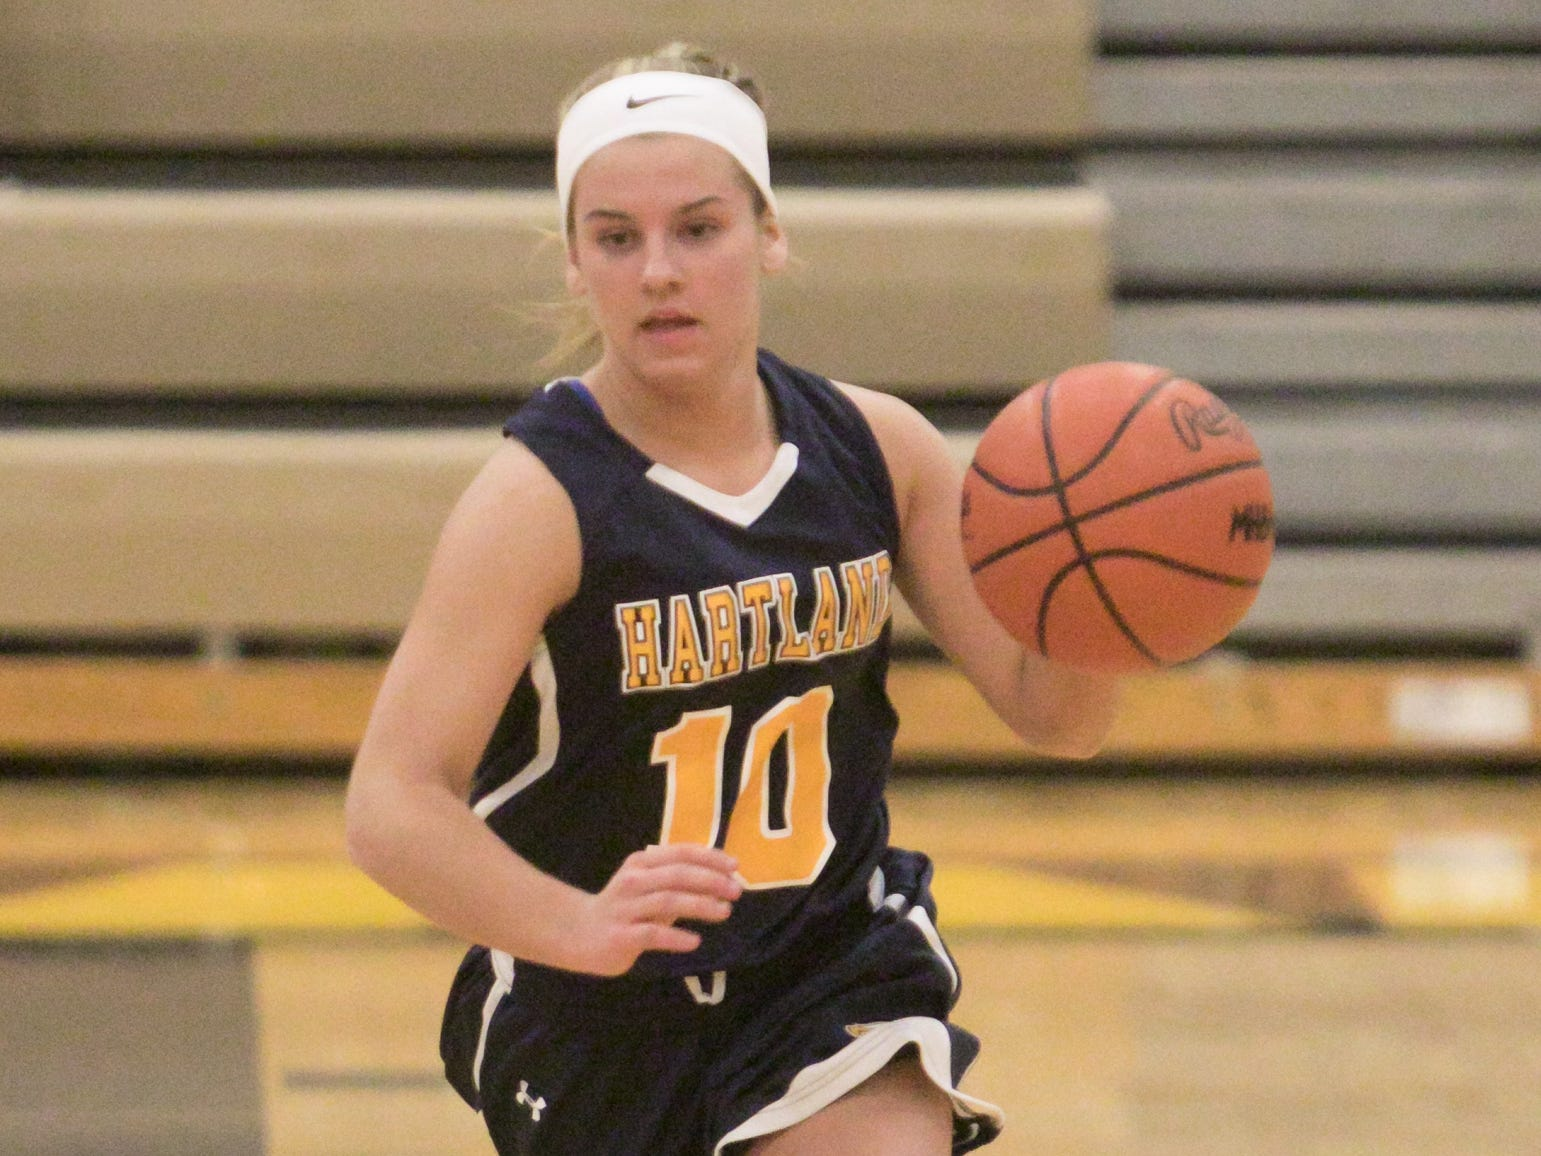 Hartland Eagle Nikki Dompierre brings the ball in play in the district championship game against Howell Friday, March 8, 2019.